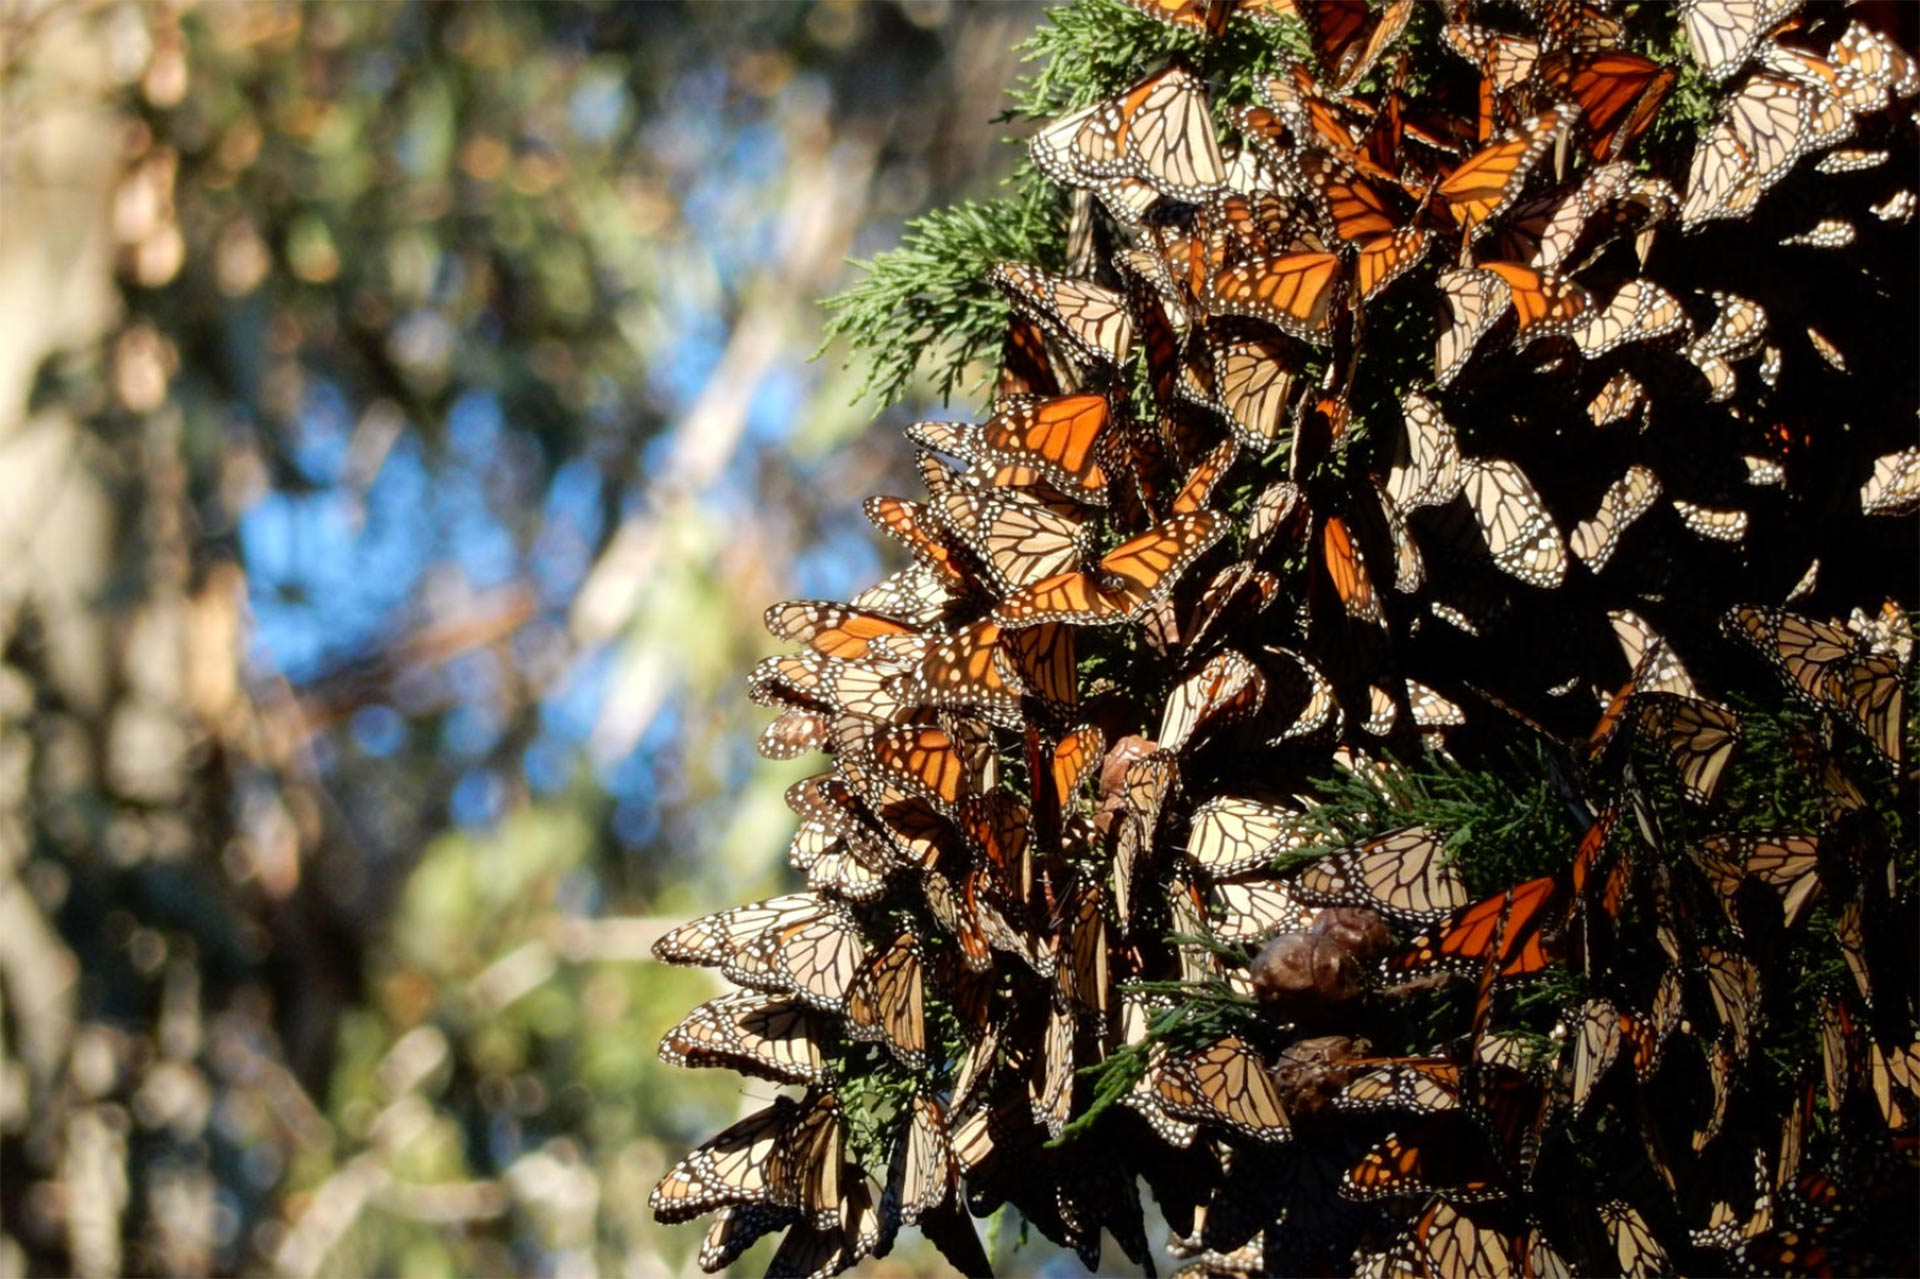 Monarch Grove in Pismo Beach, California